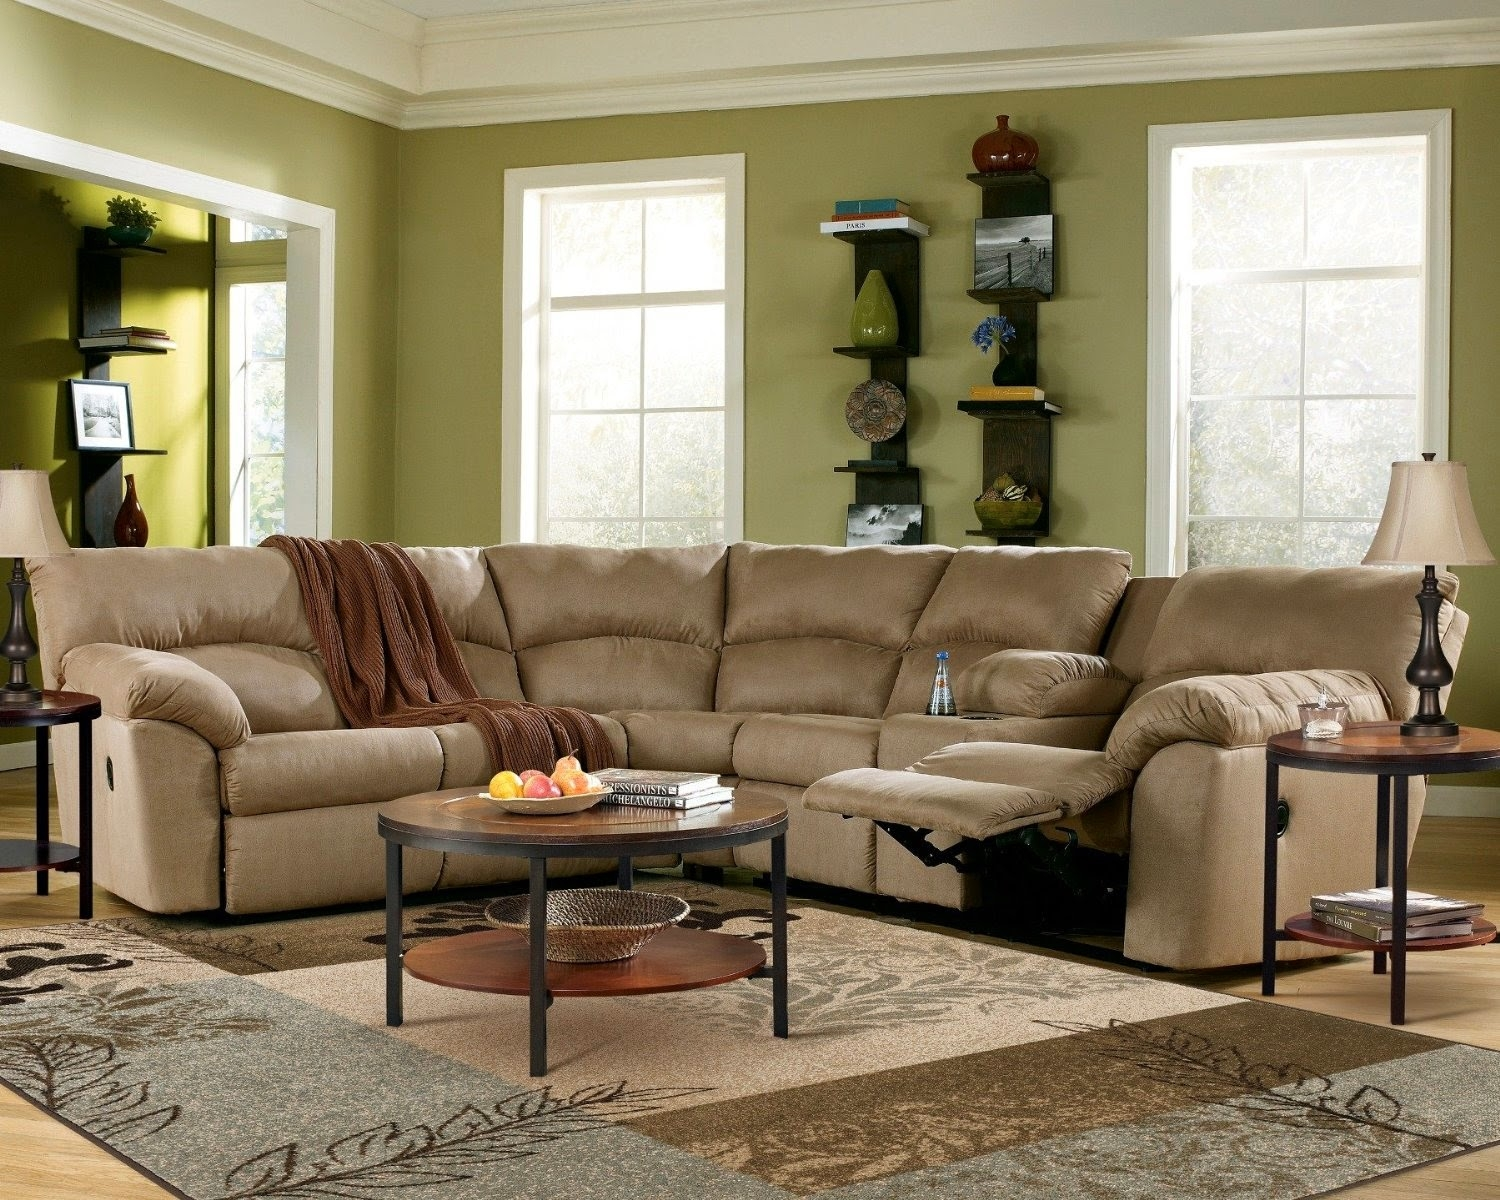 Curved Sofa Curved Reclining Sofa Regarding Curved Sectional Sofa With Recliner (#6 of 12)